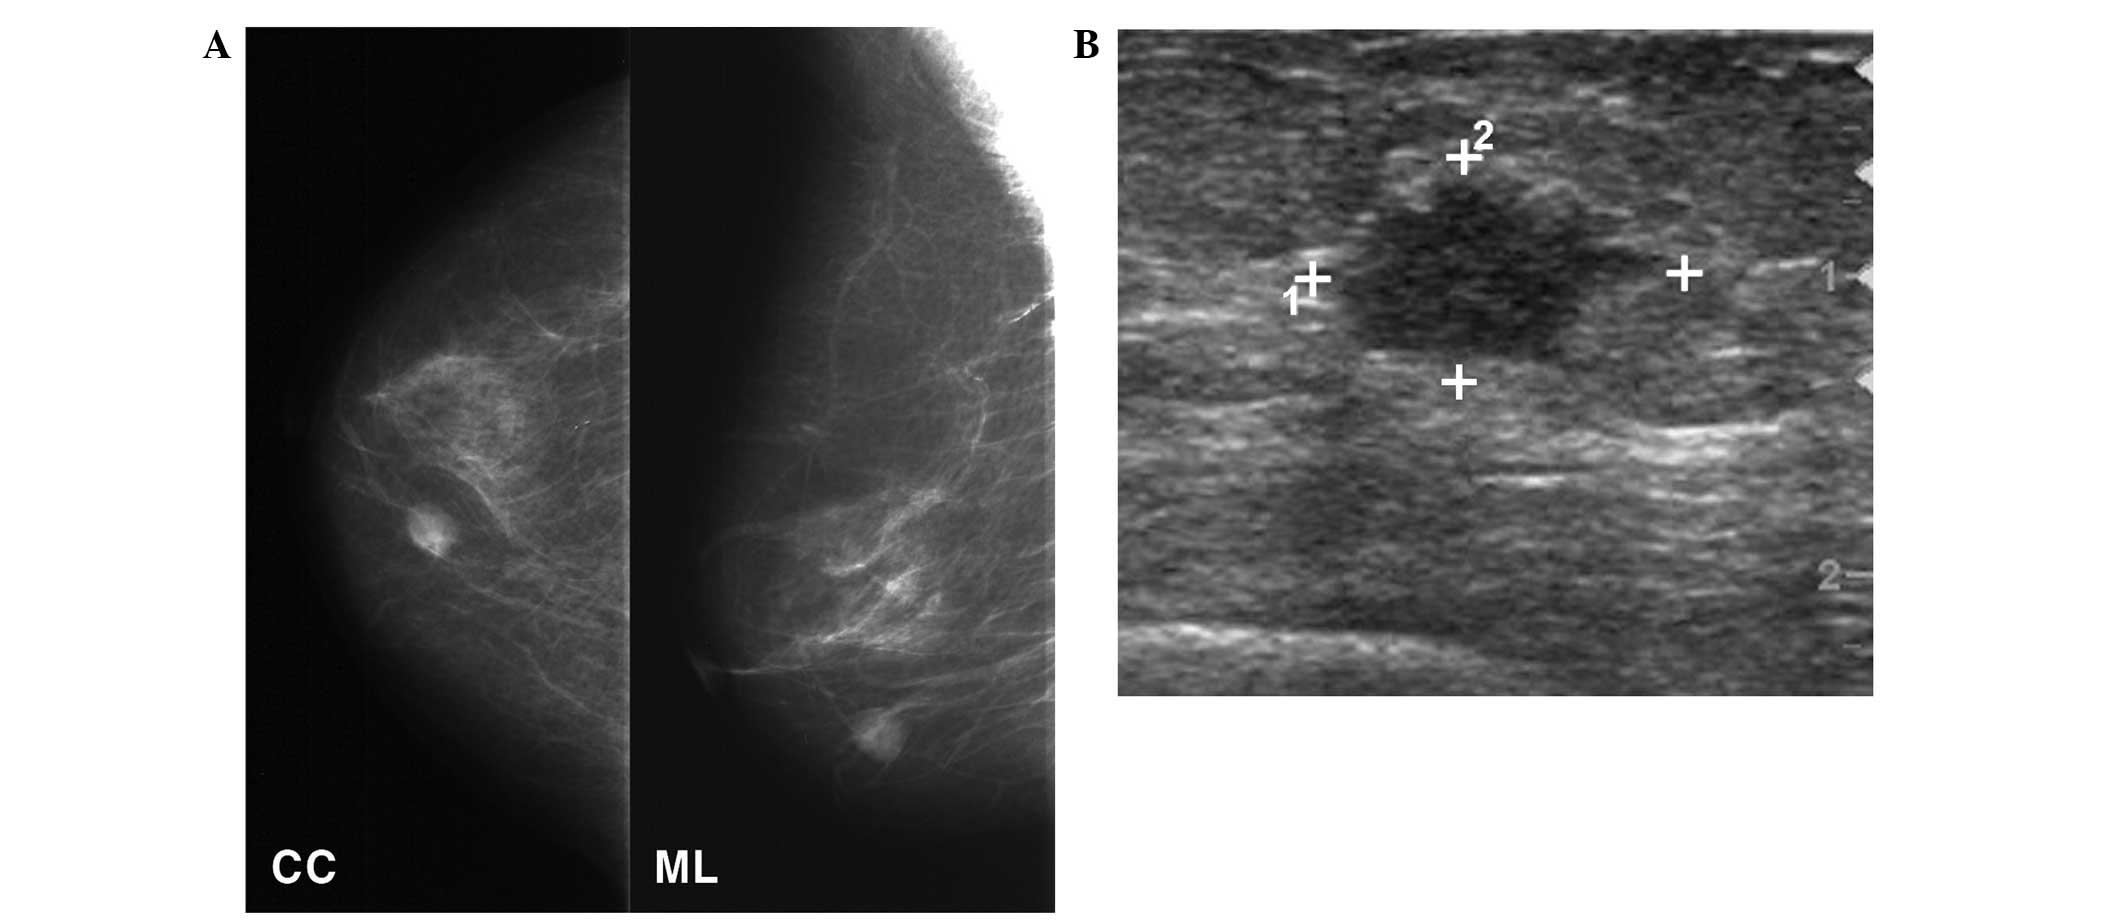 B Ultrasonography Showing A 1 3 Cm Speculated Irregularly Shaped Hypoechoic Min Thet